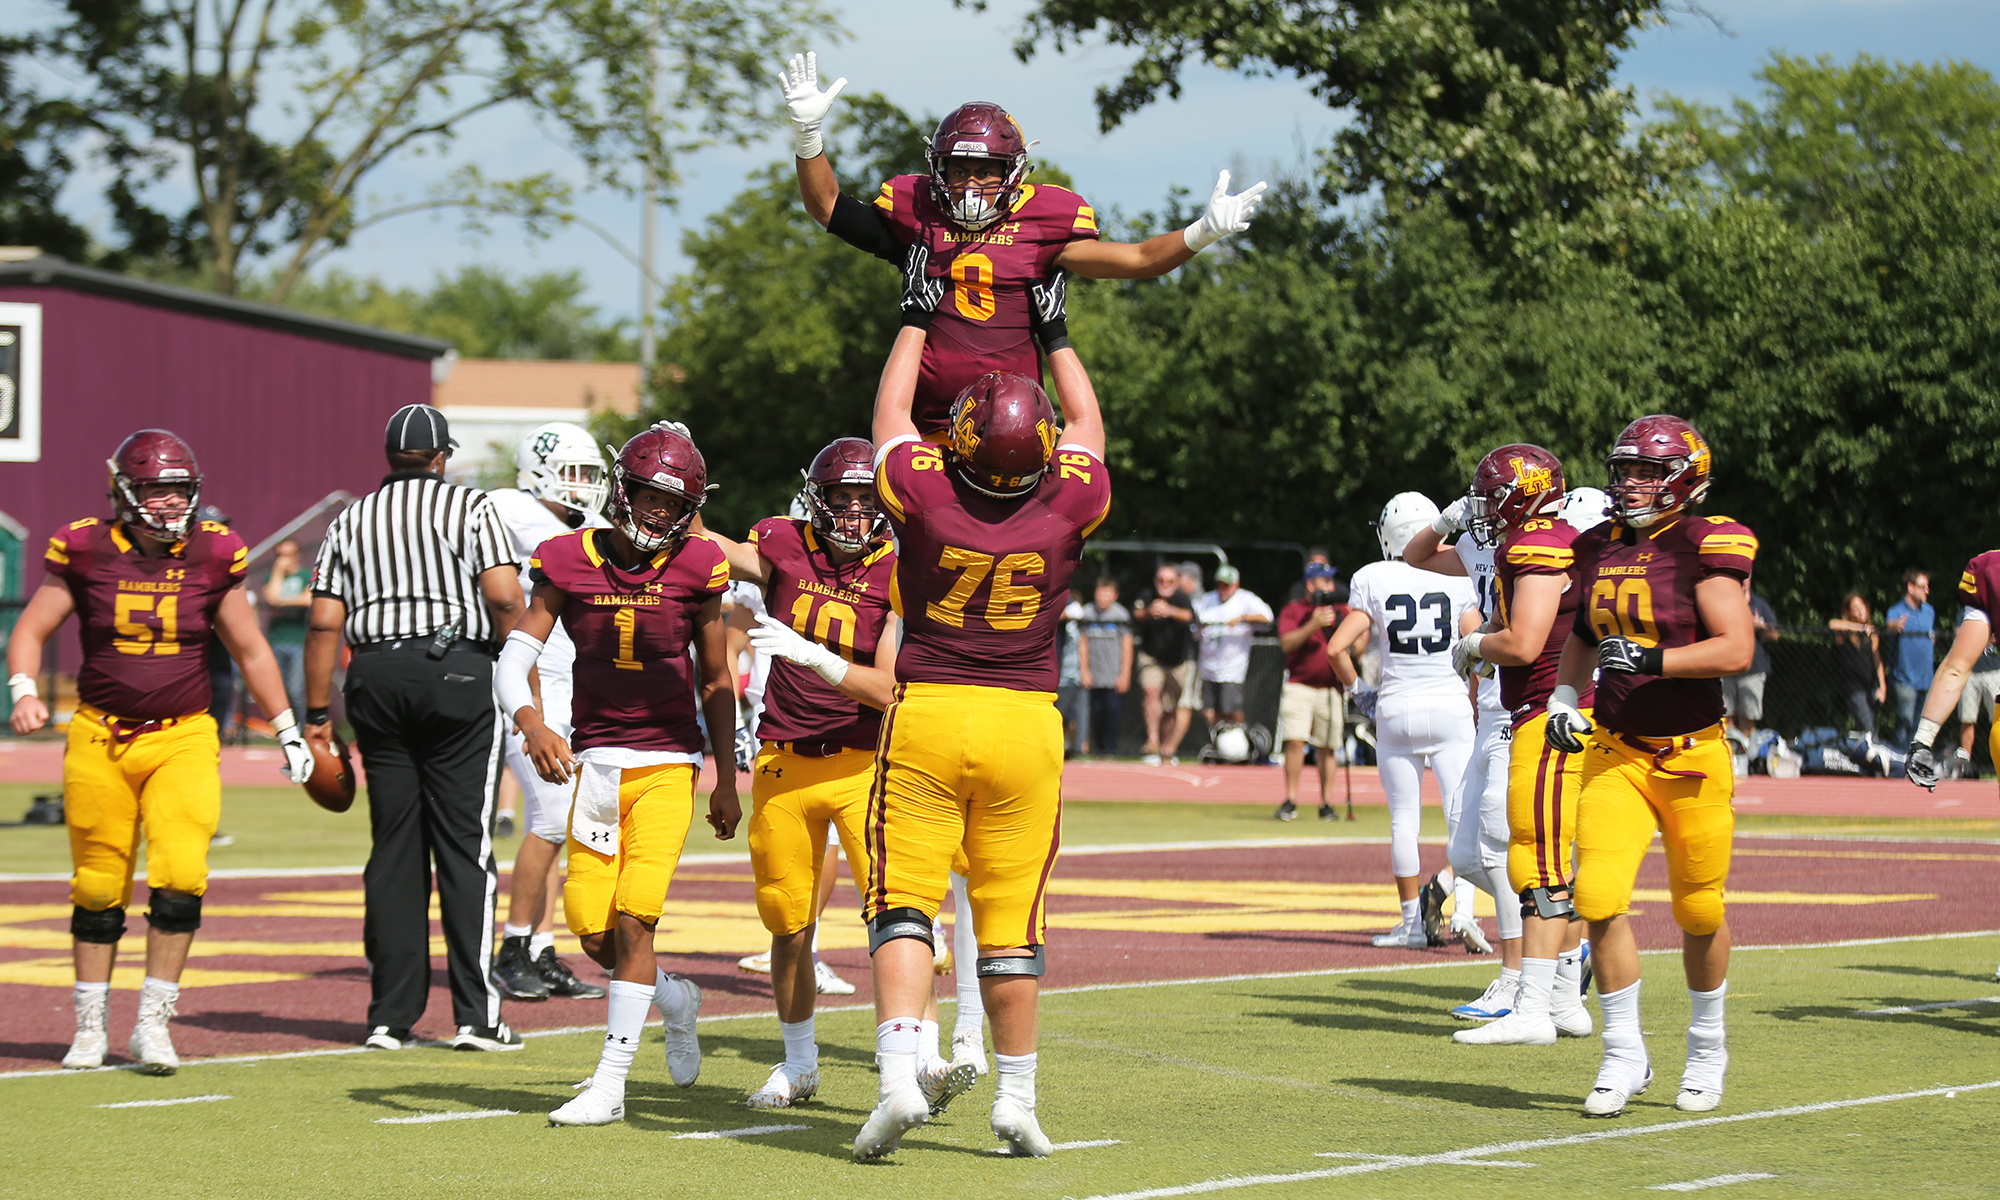 Loyola's Trevor Cabanban (8) scores a touchdown and gets a lift from Christo Kelly (76).